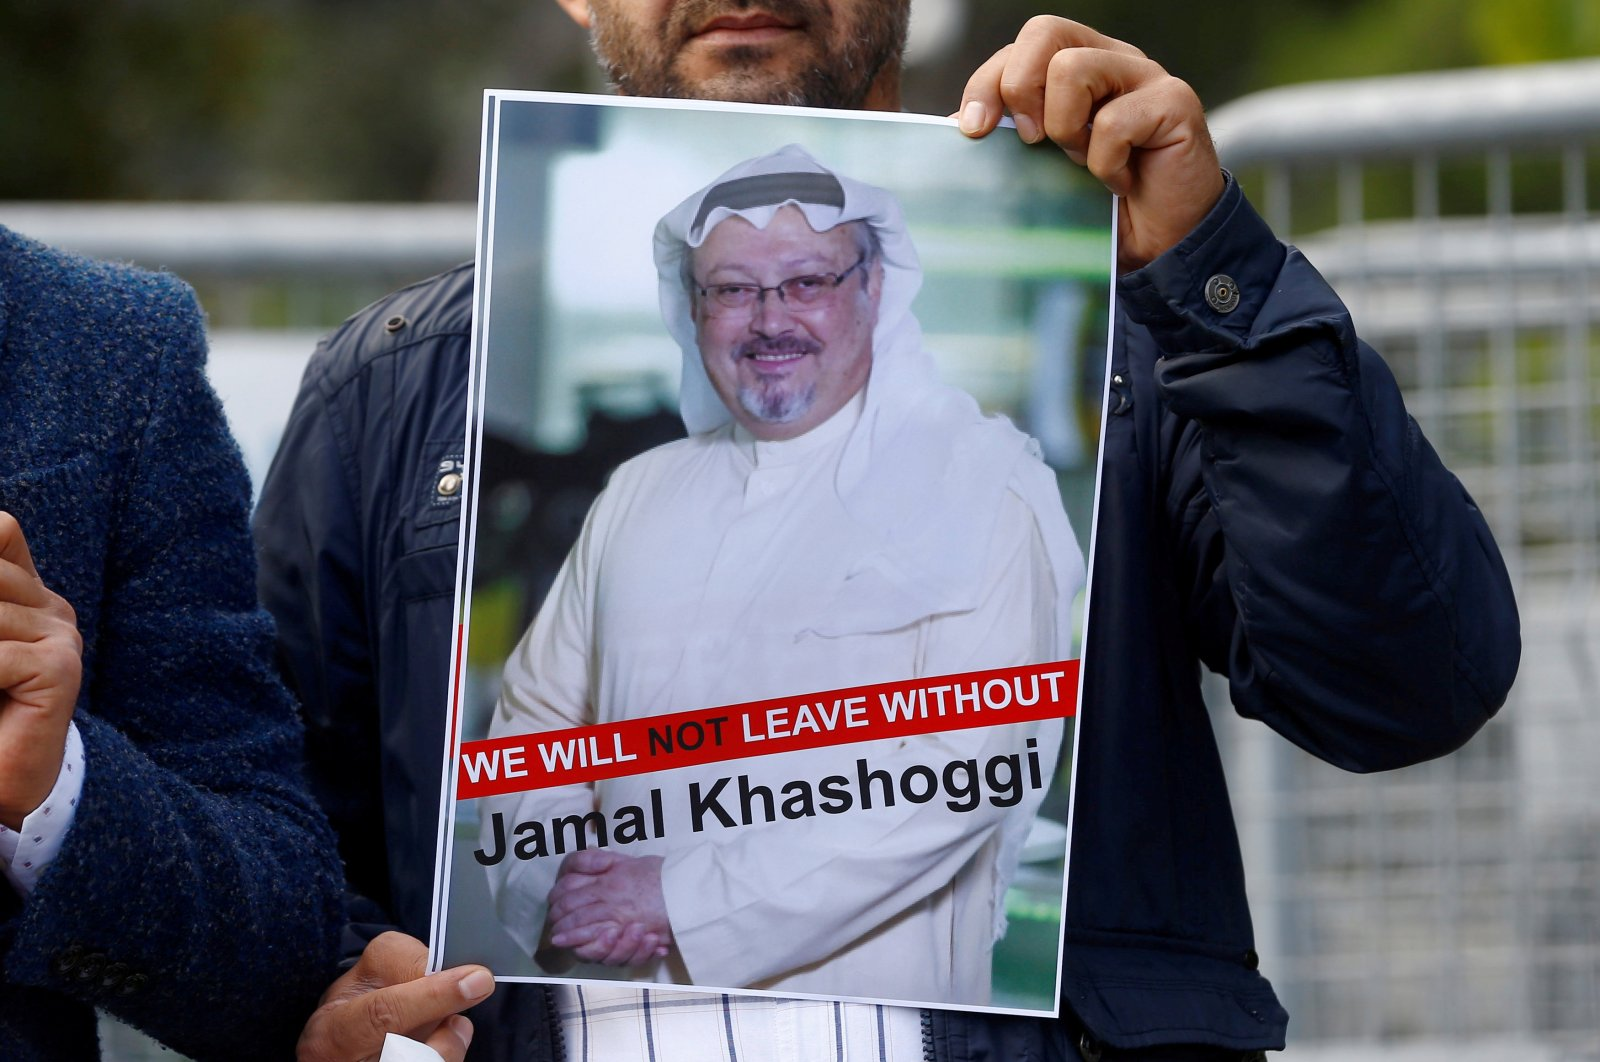 A demonstrator holds a picture of Saudi journalist Jamal Khashoggi during a protest in front of Saudi Arabia's Consulate in Istanbul, Turkey, Oct. 5, 2018. (REUTERS Photo)